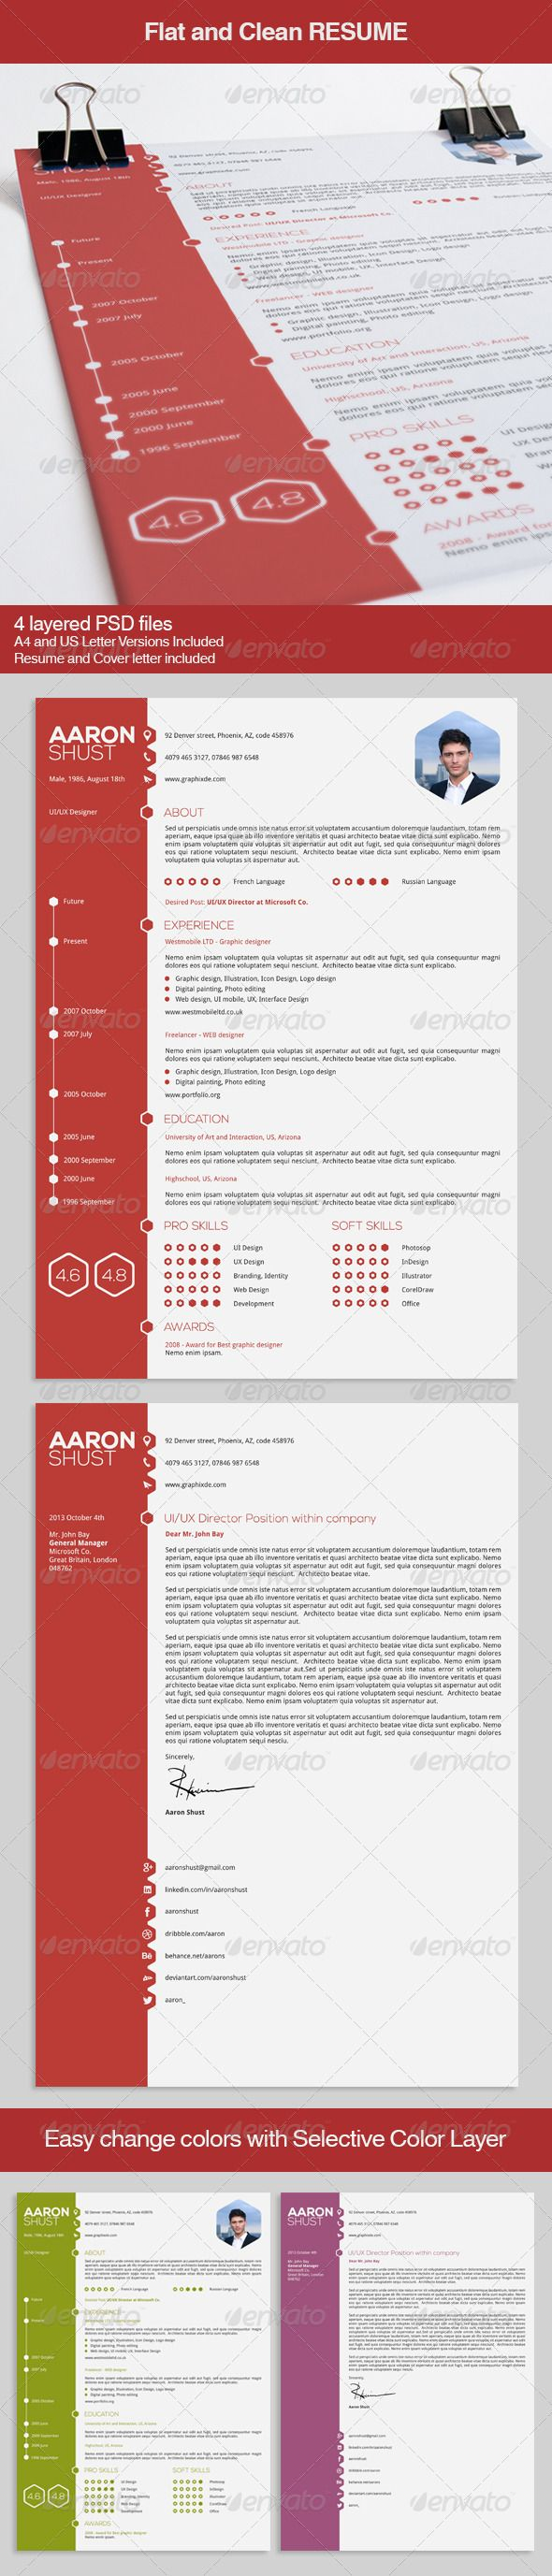 Flat and Clean Resume GraphicRiver wwwkickresumecom 132